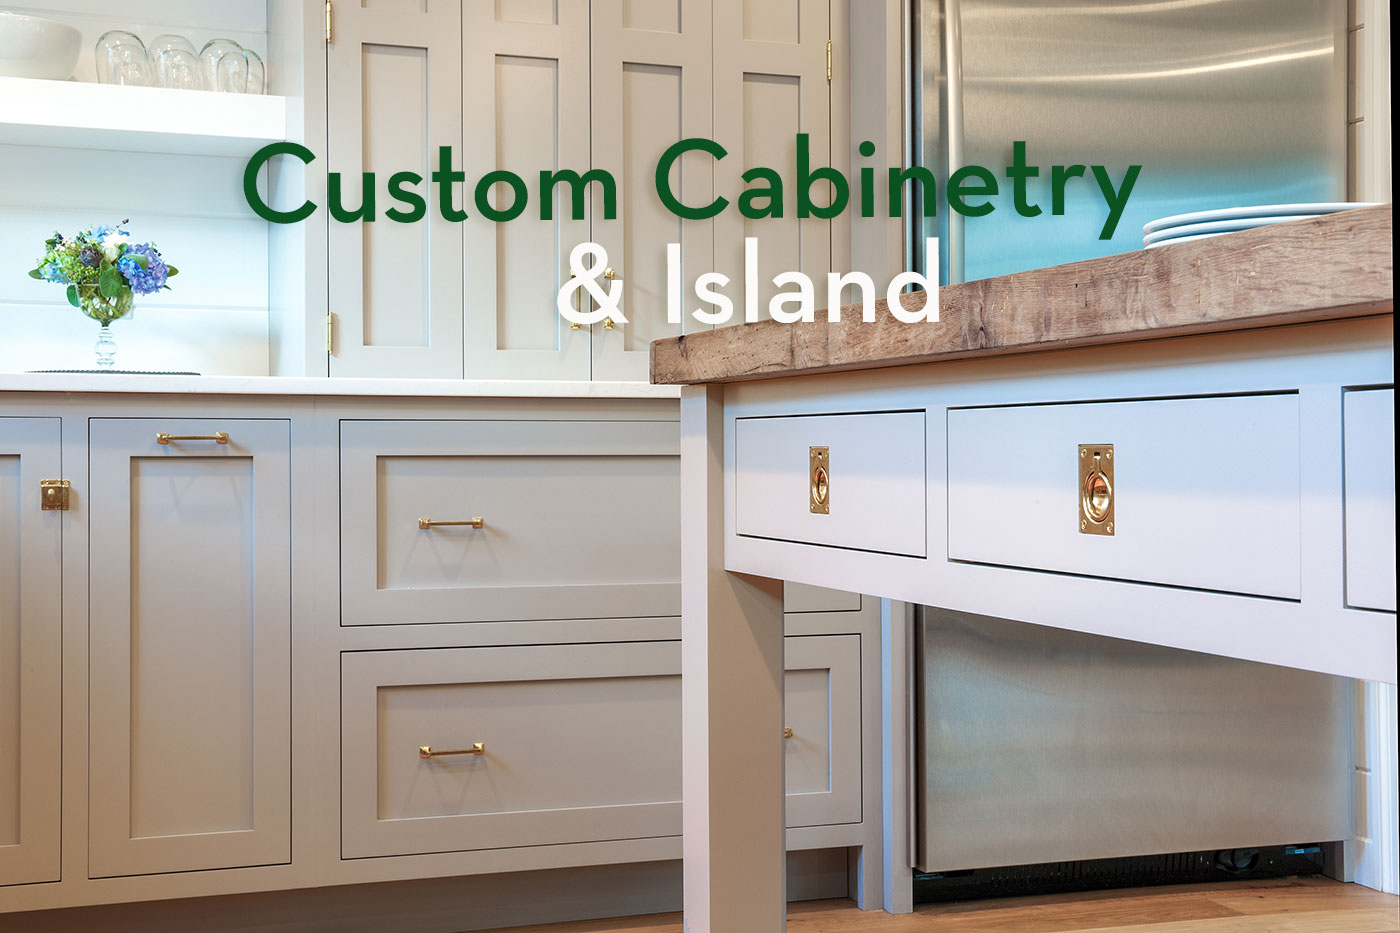 Custom cabinetry and island by Crown Point Cabinetry